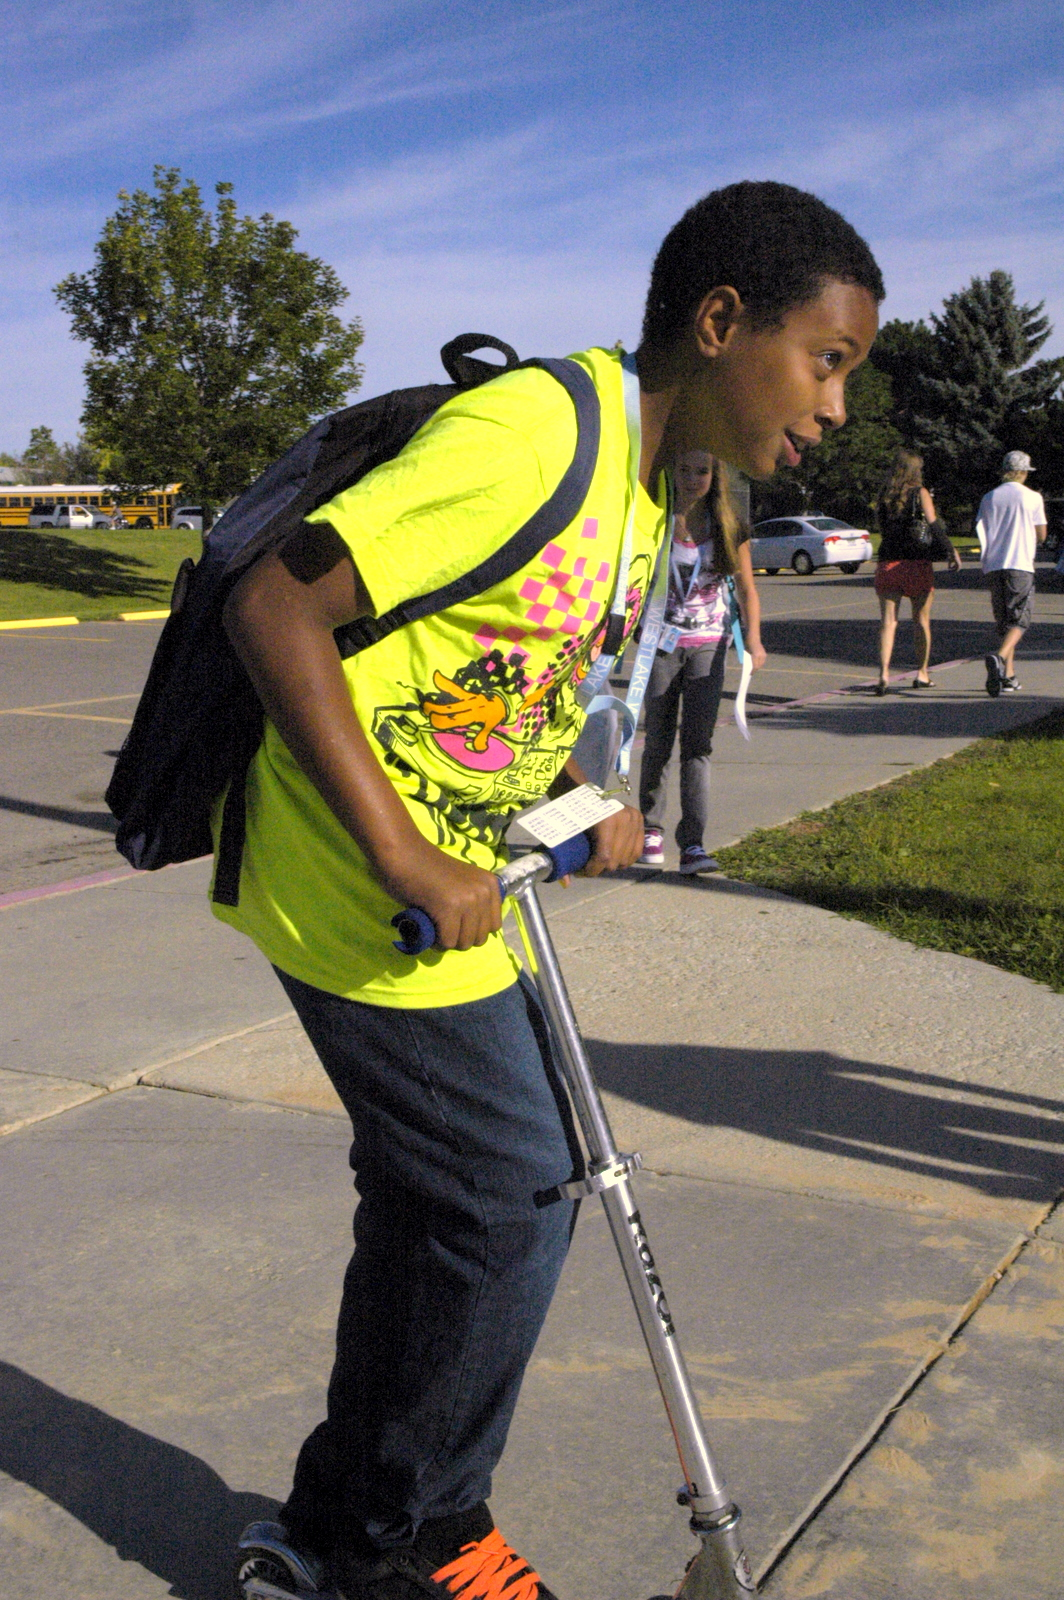 Taylor Lenord rides his scooter at Westlake Middle School's freshman orientation 08/18/10. By Dylan Otto Krider